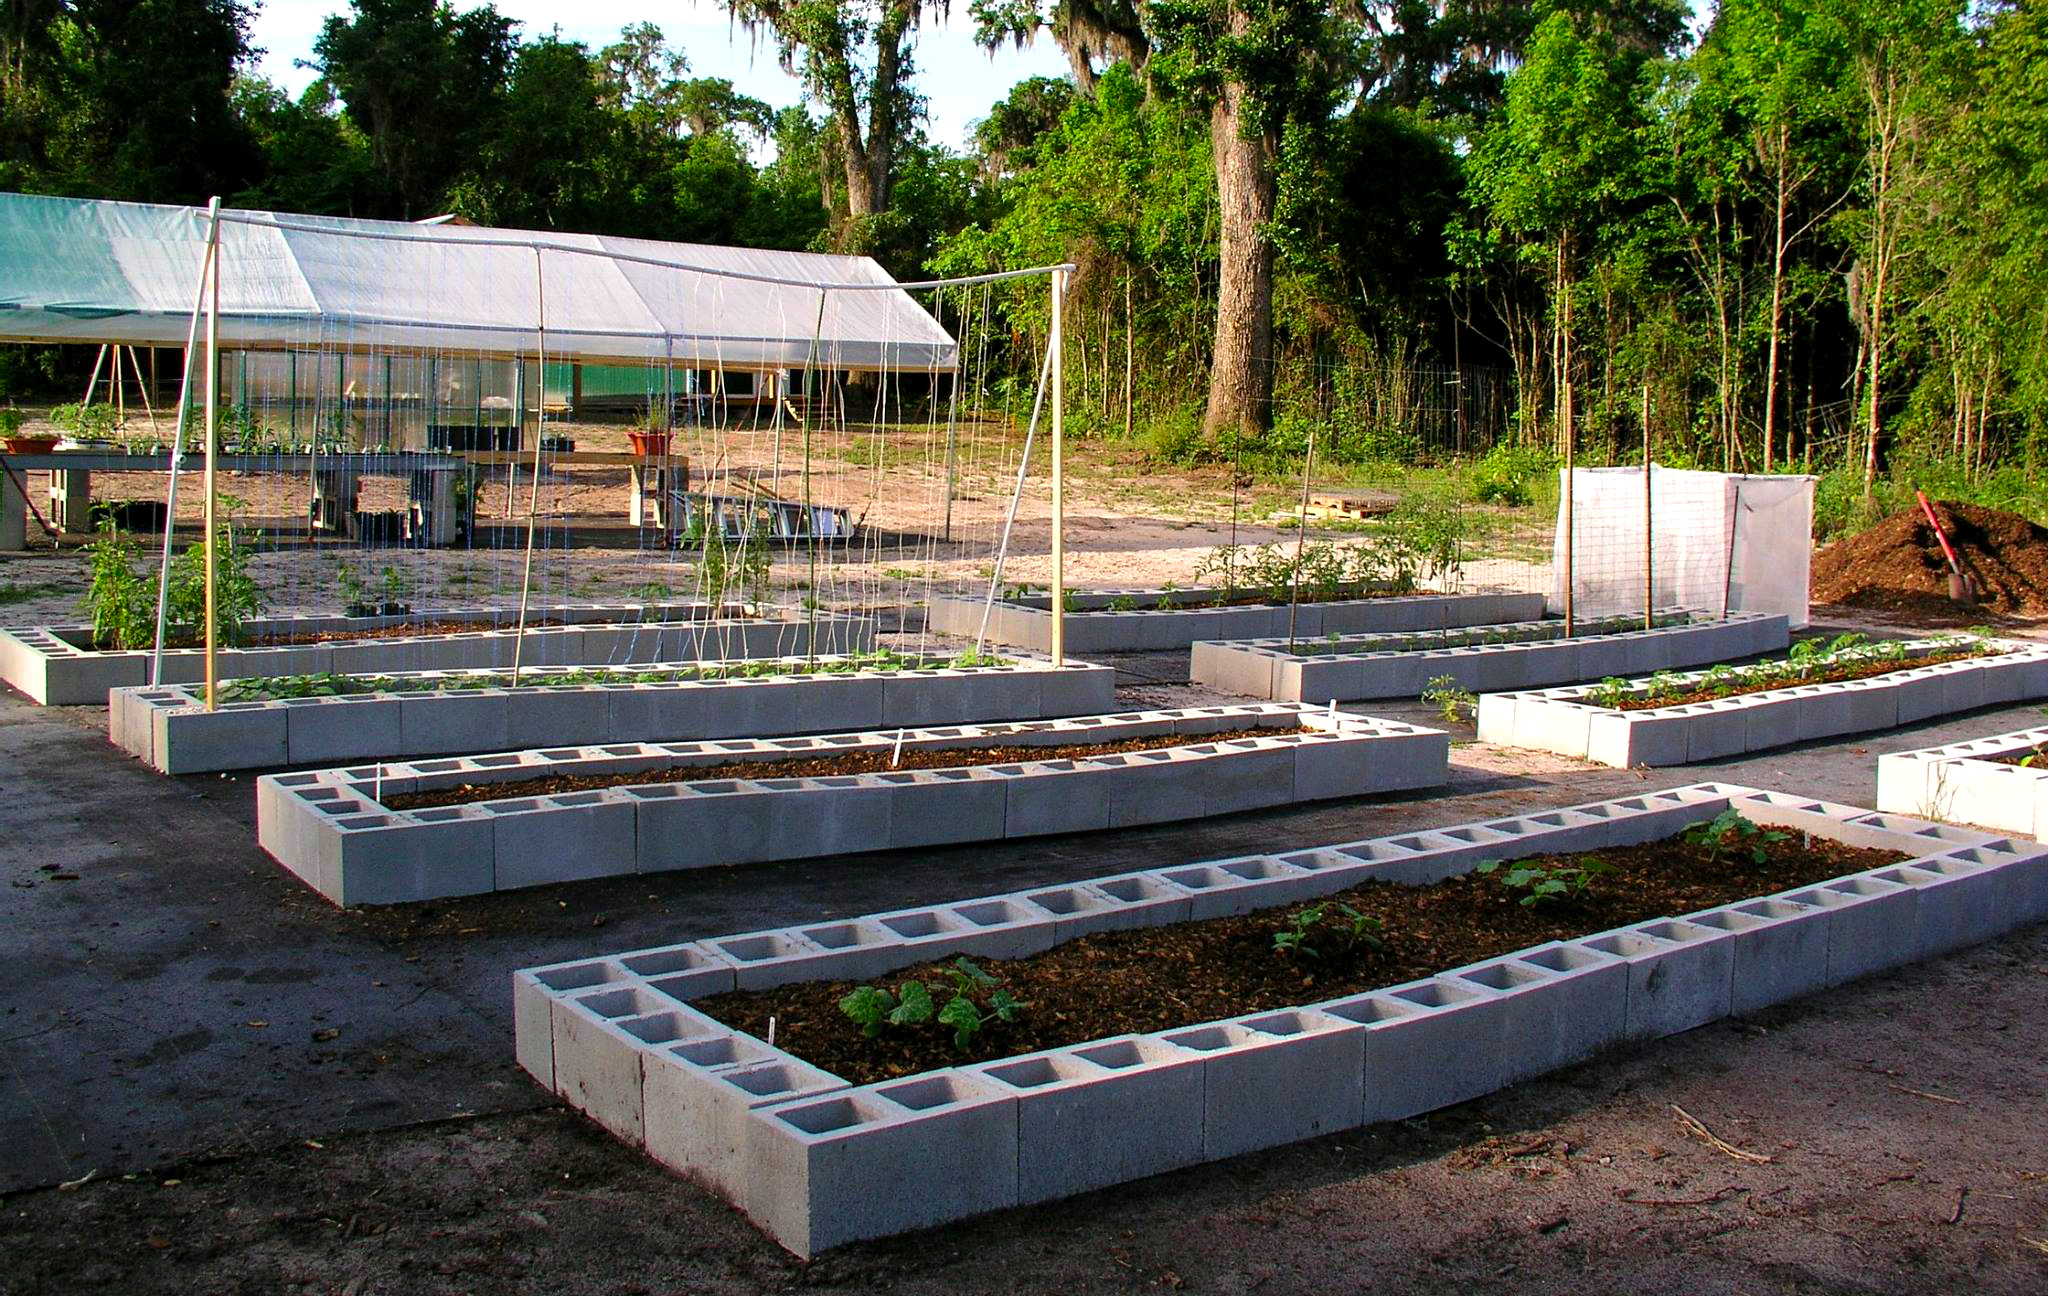 Florida raised beds gardens growin 39 crazy acres for Making raised garden beds